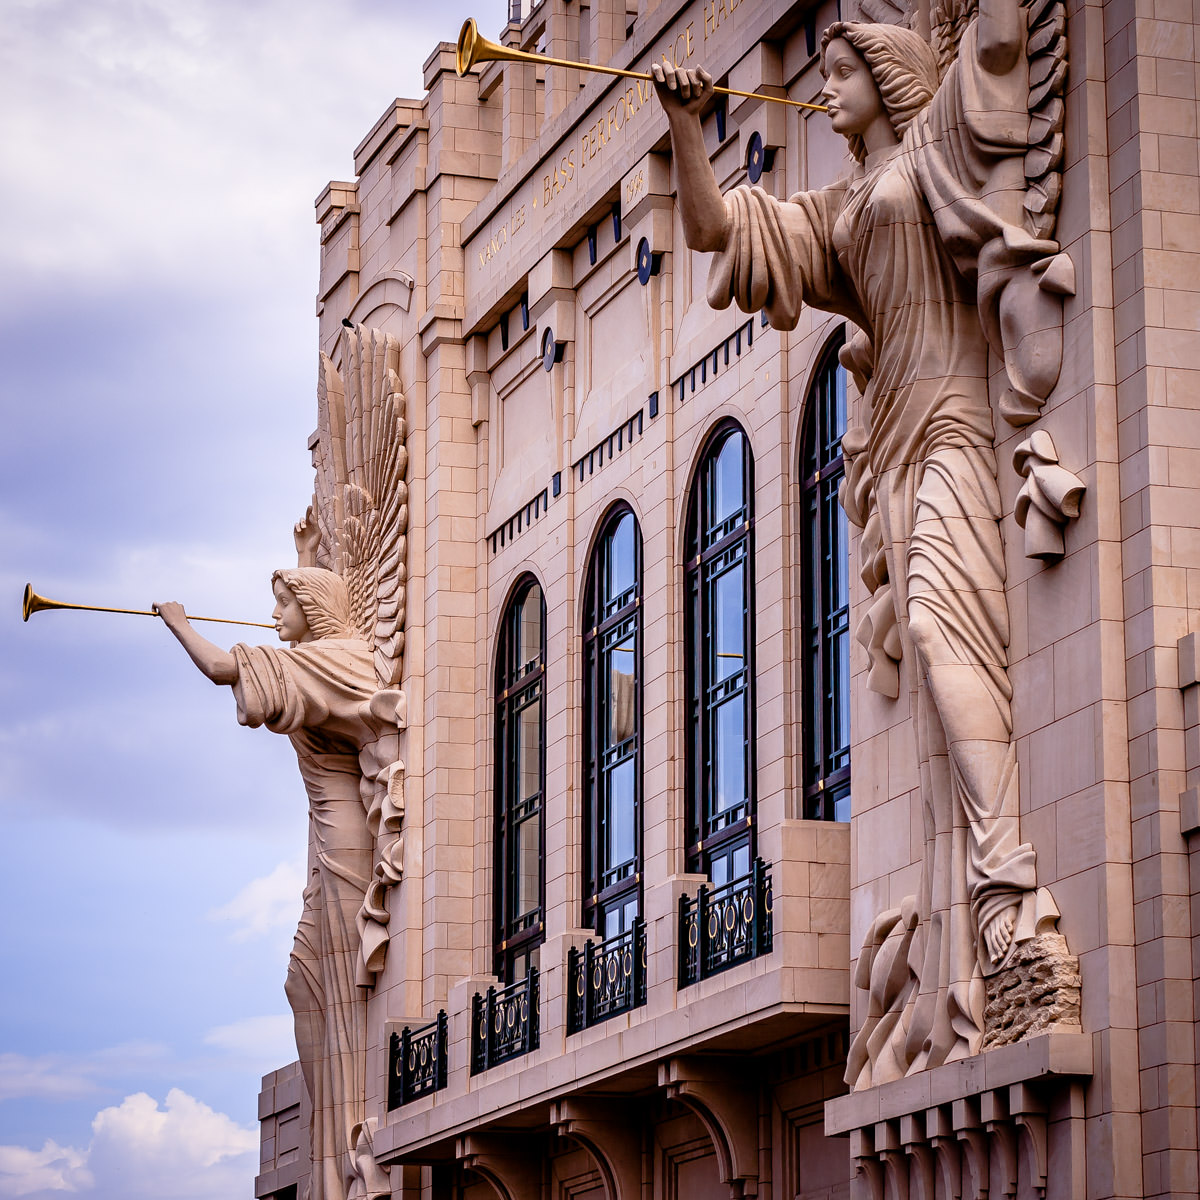 Two 48-foot-tall angels on the Grand Facade of Bass Performance Hall in Fort Worth, Texas, sculpted by Marton Varo.